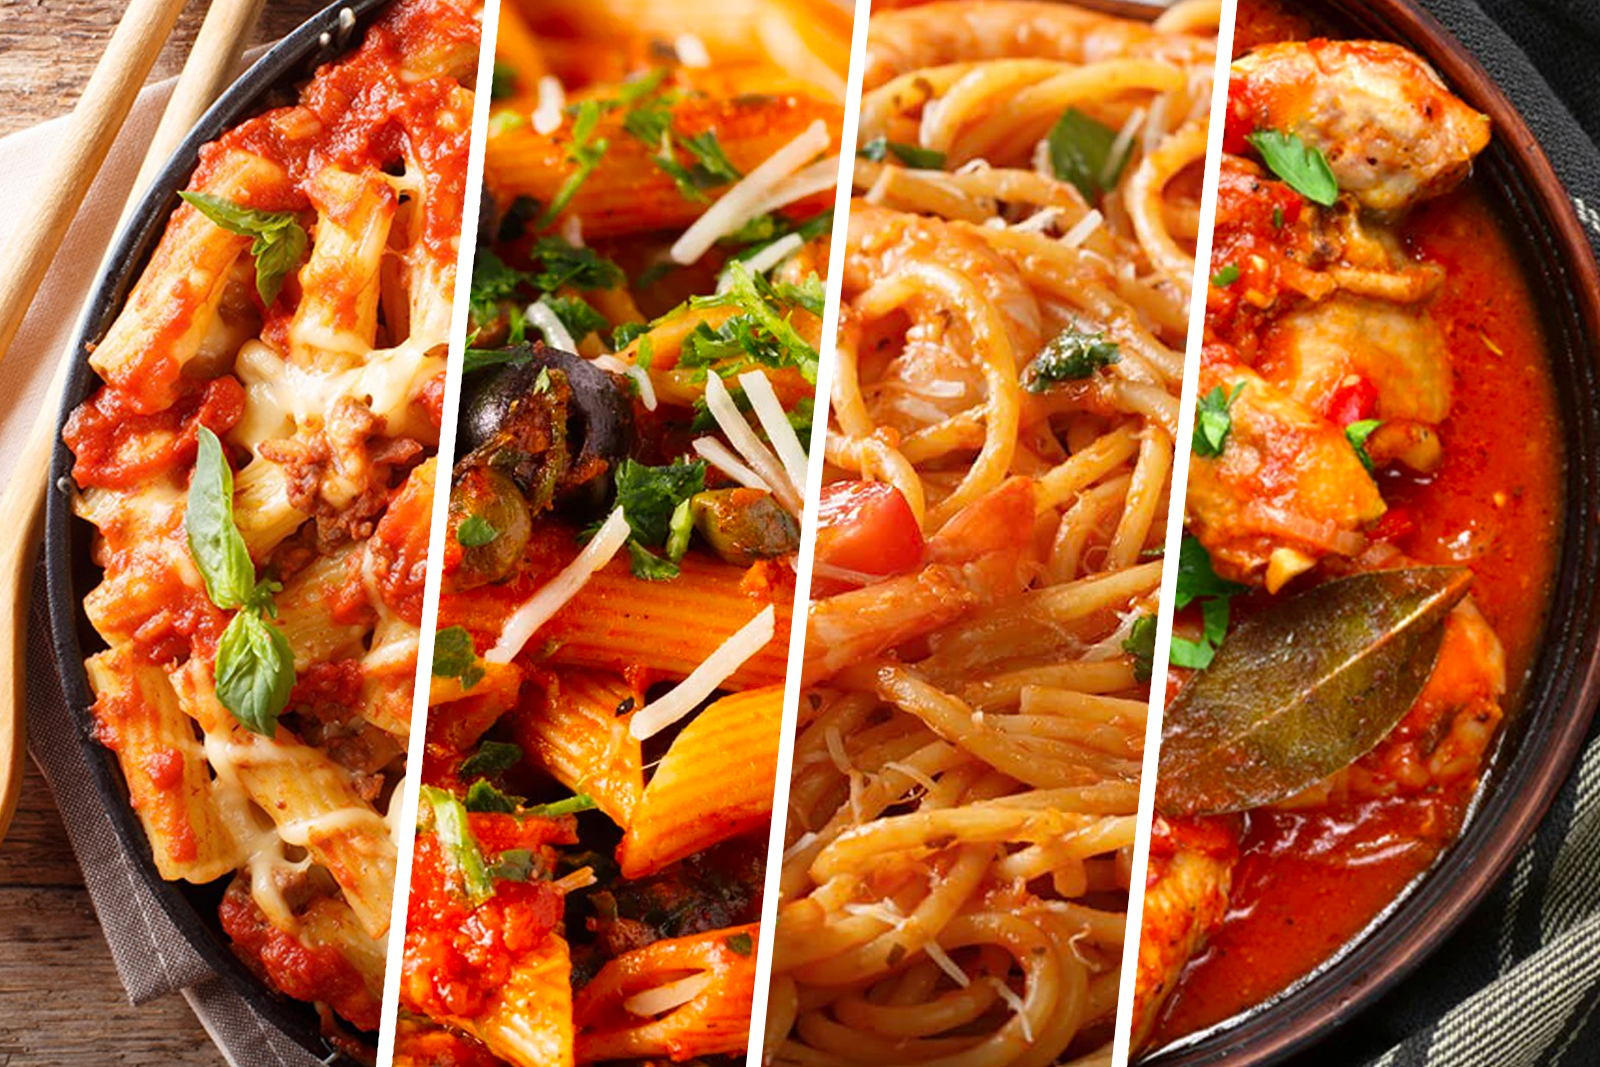 Collage of recipes - Chicken Cacciatore, Baked Ziti, Shrimp Fra Diavolo and Shrimp Fra Diavolo